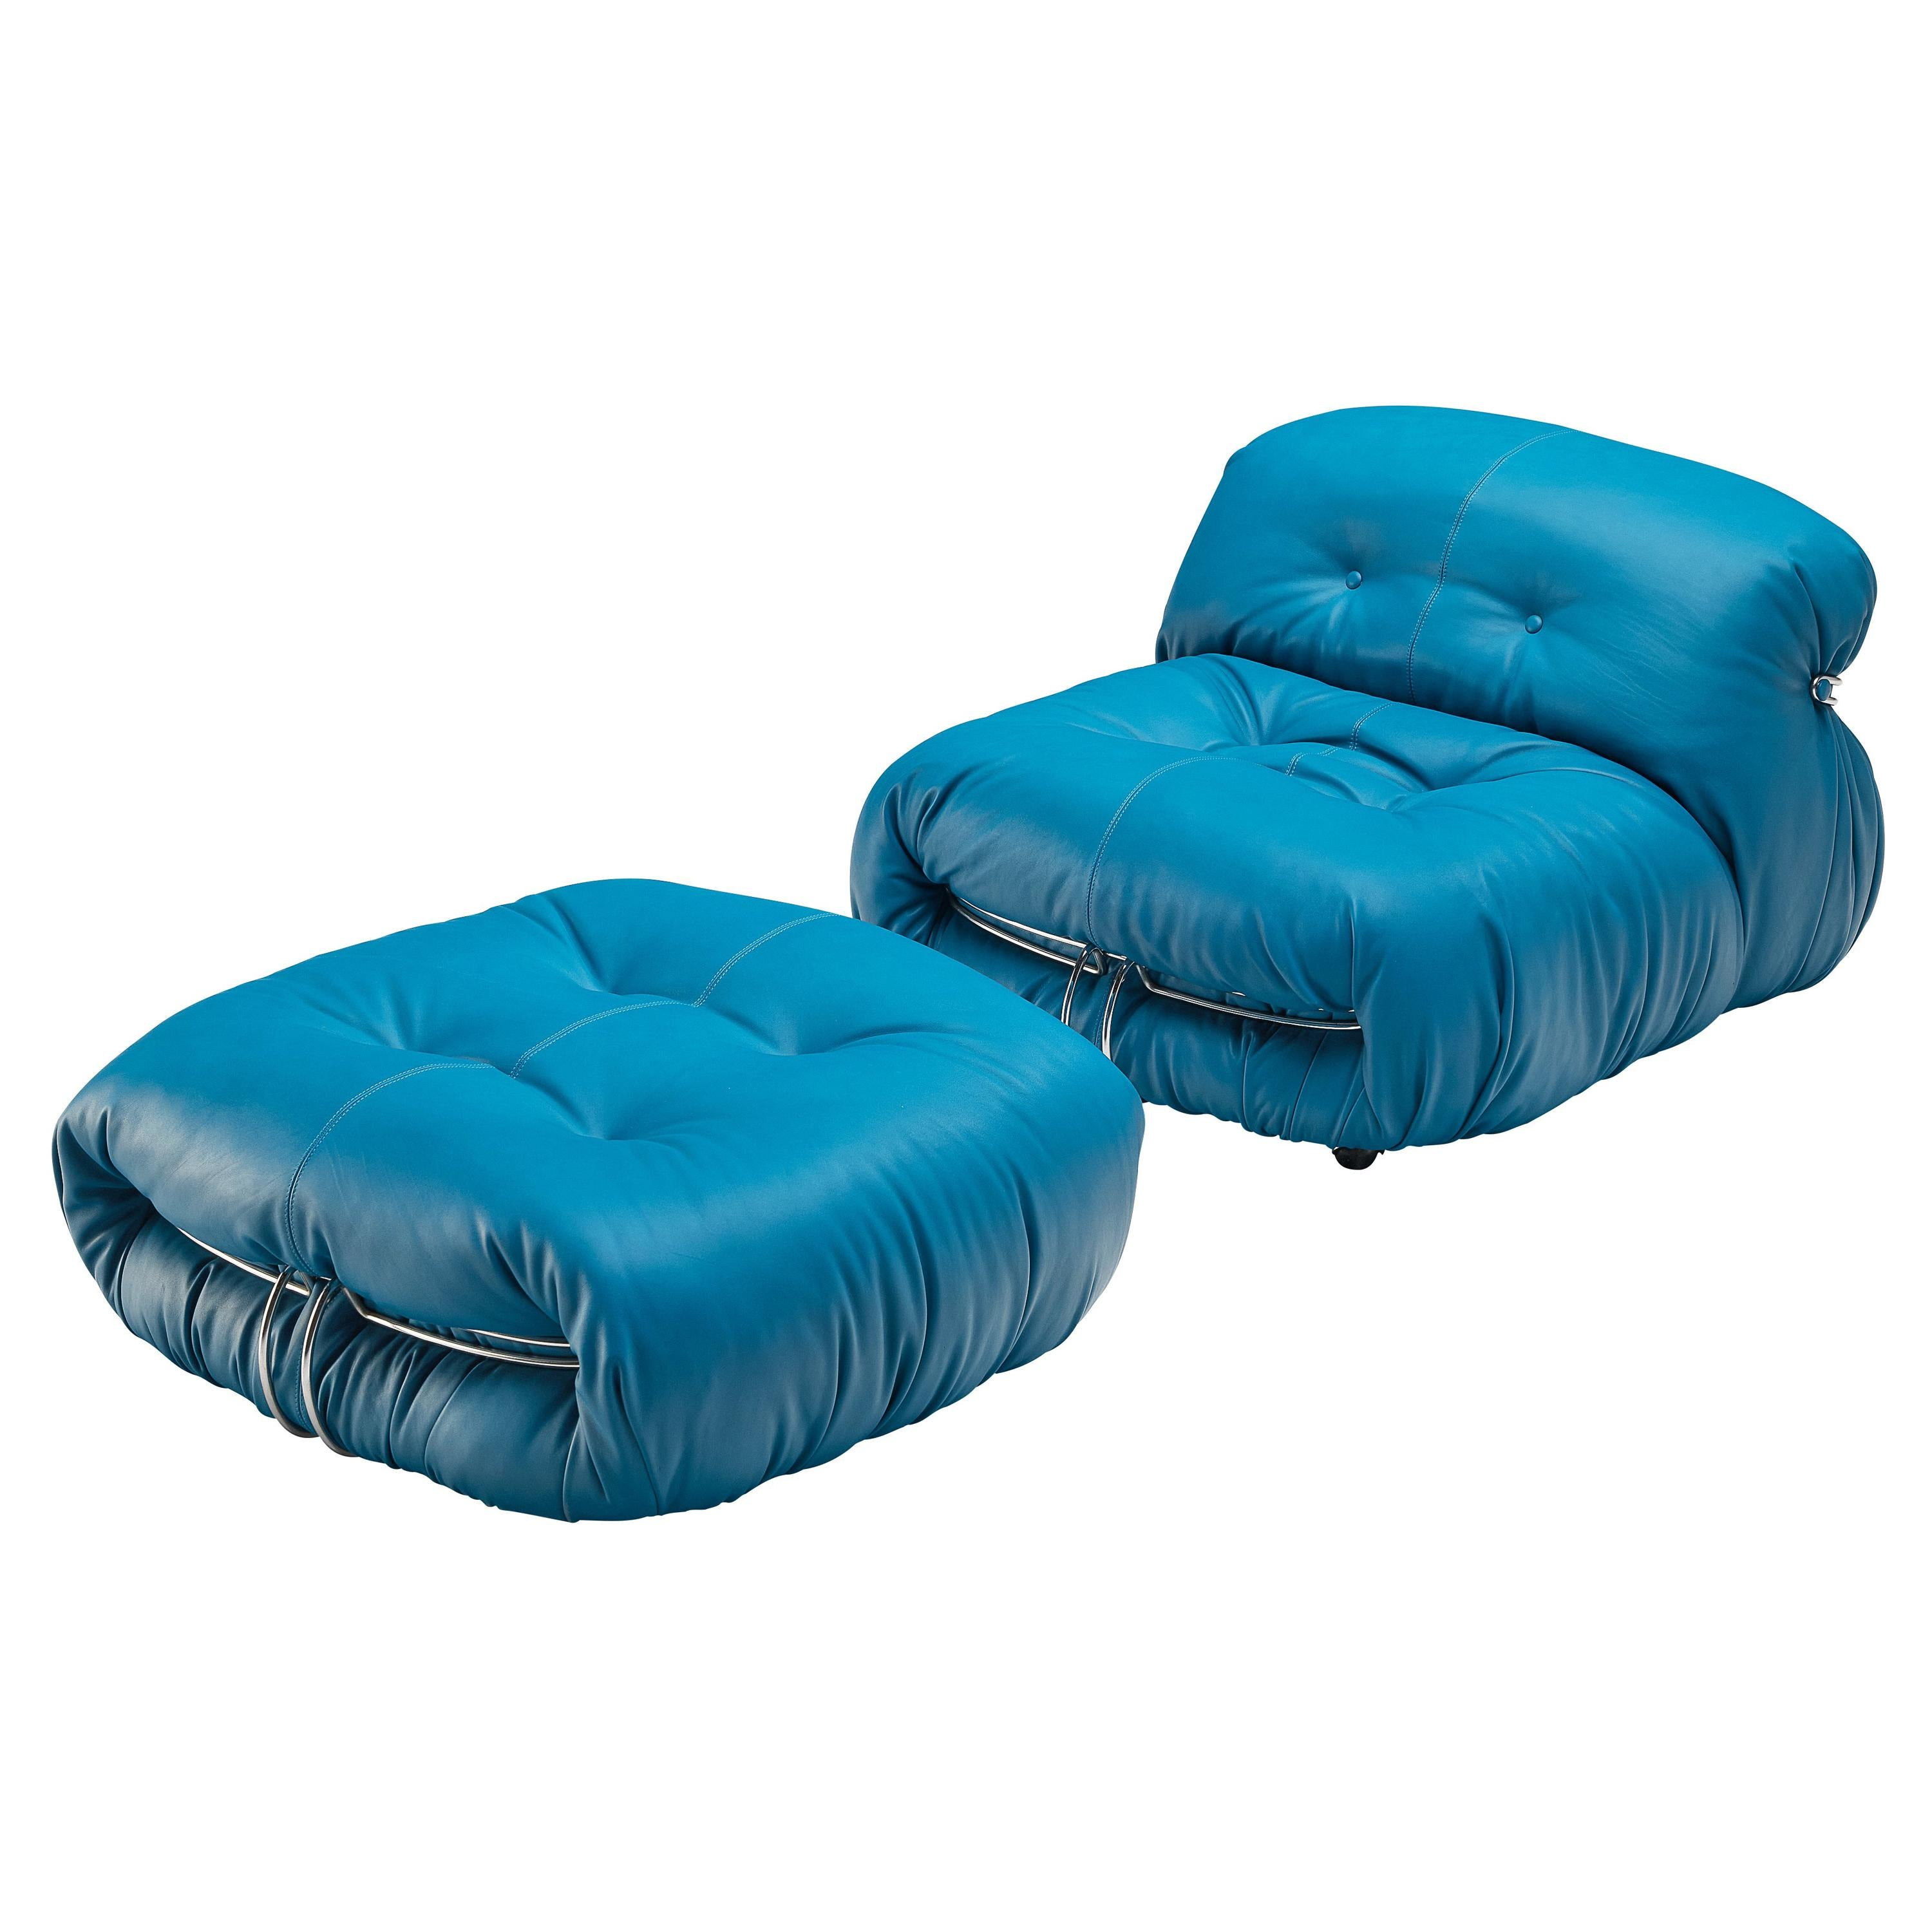 Afra & Tobia Scarpa 'Soriana' Lounge Chair with Ottoman in Blue Leather